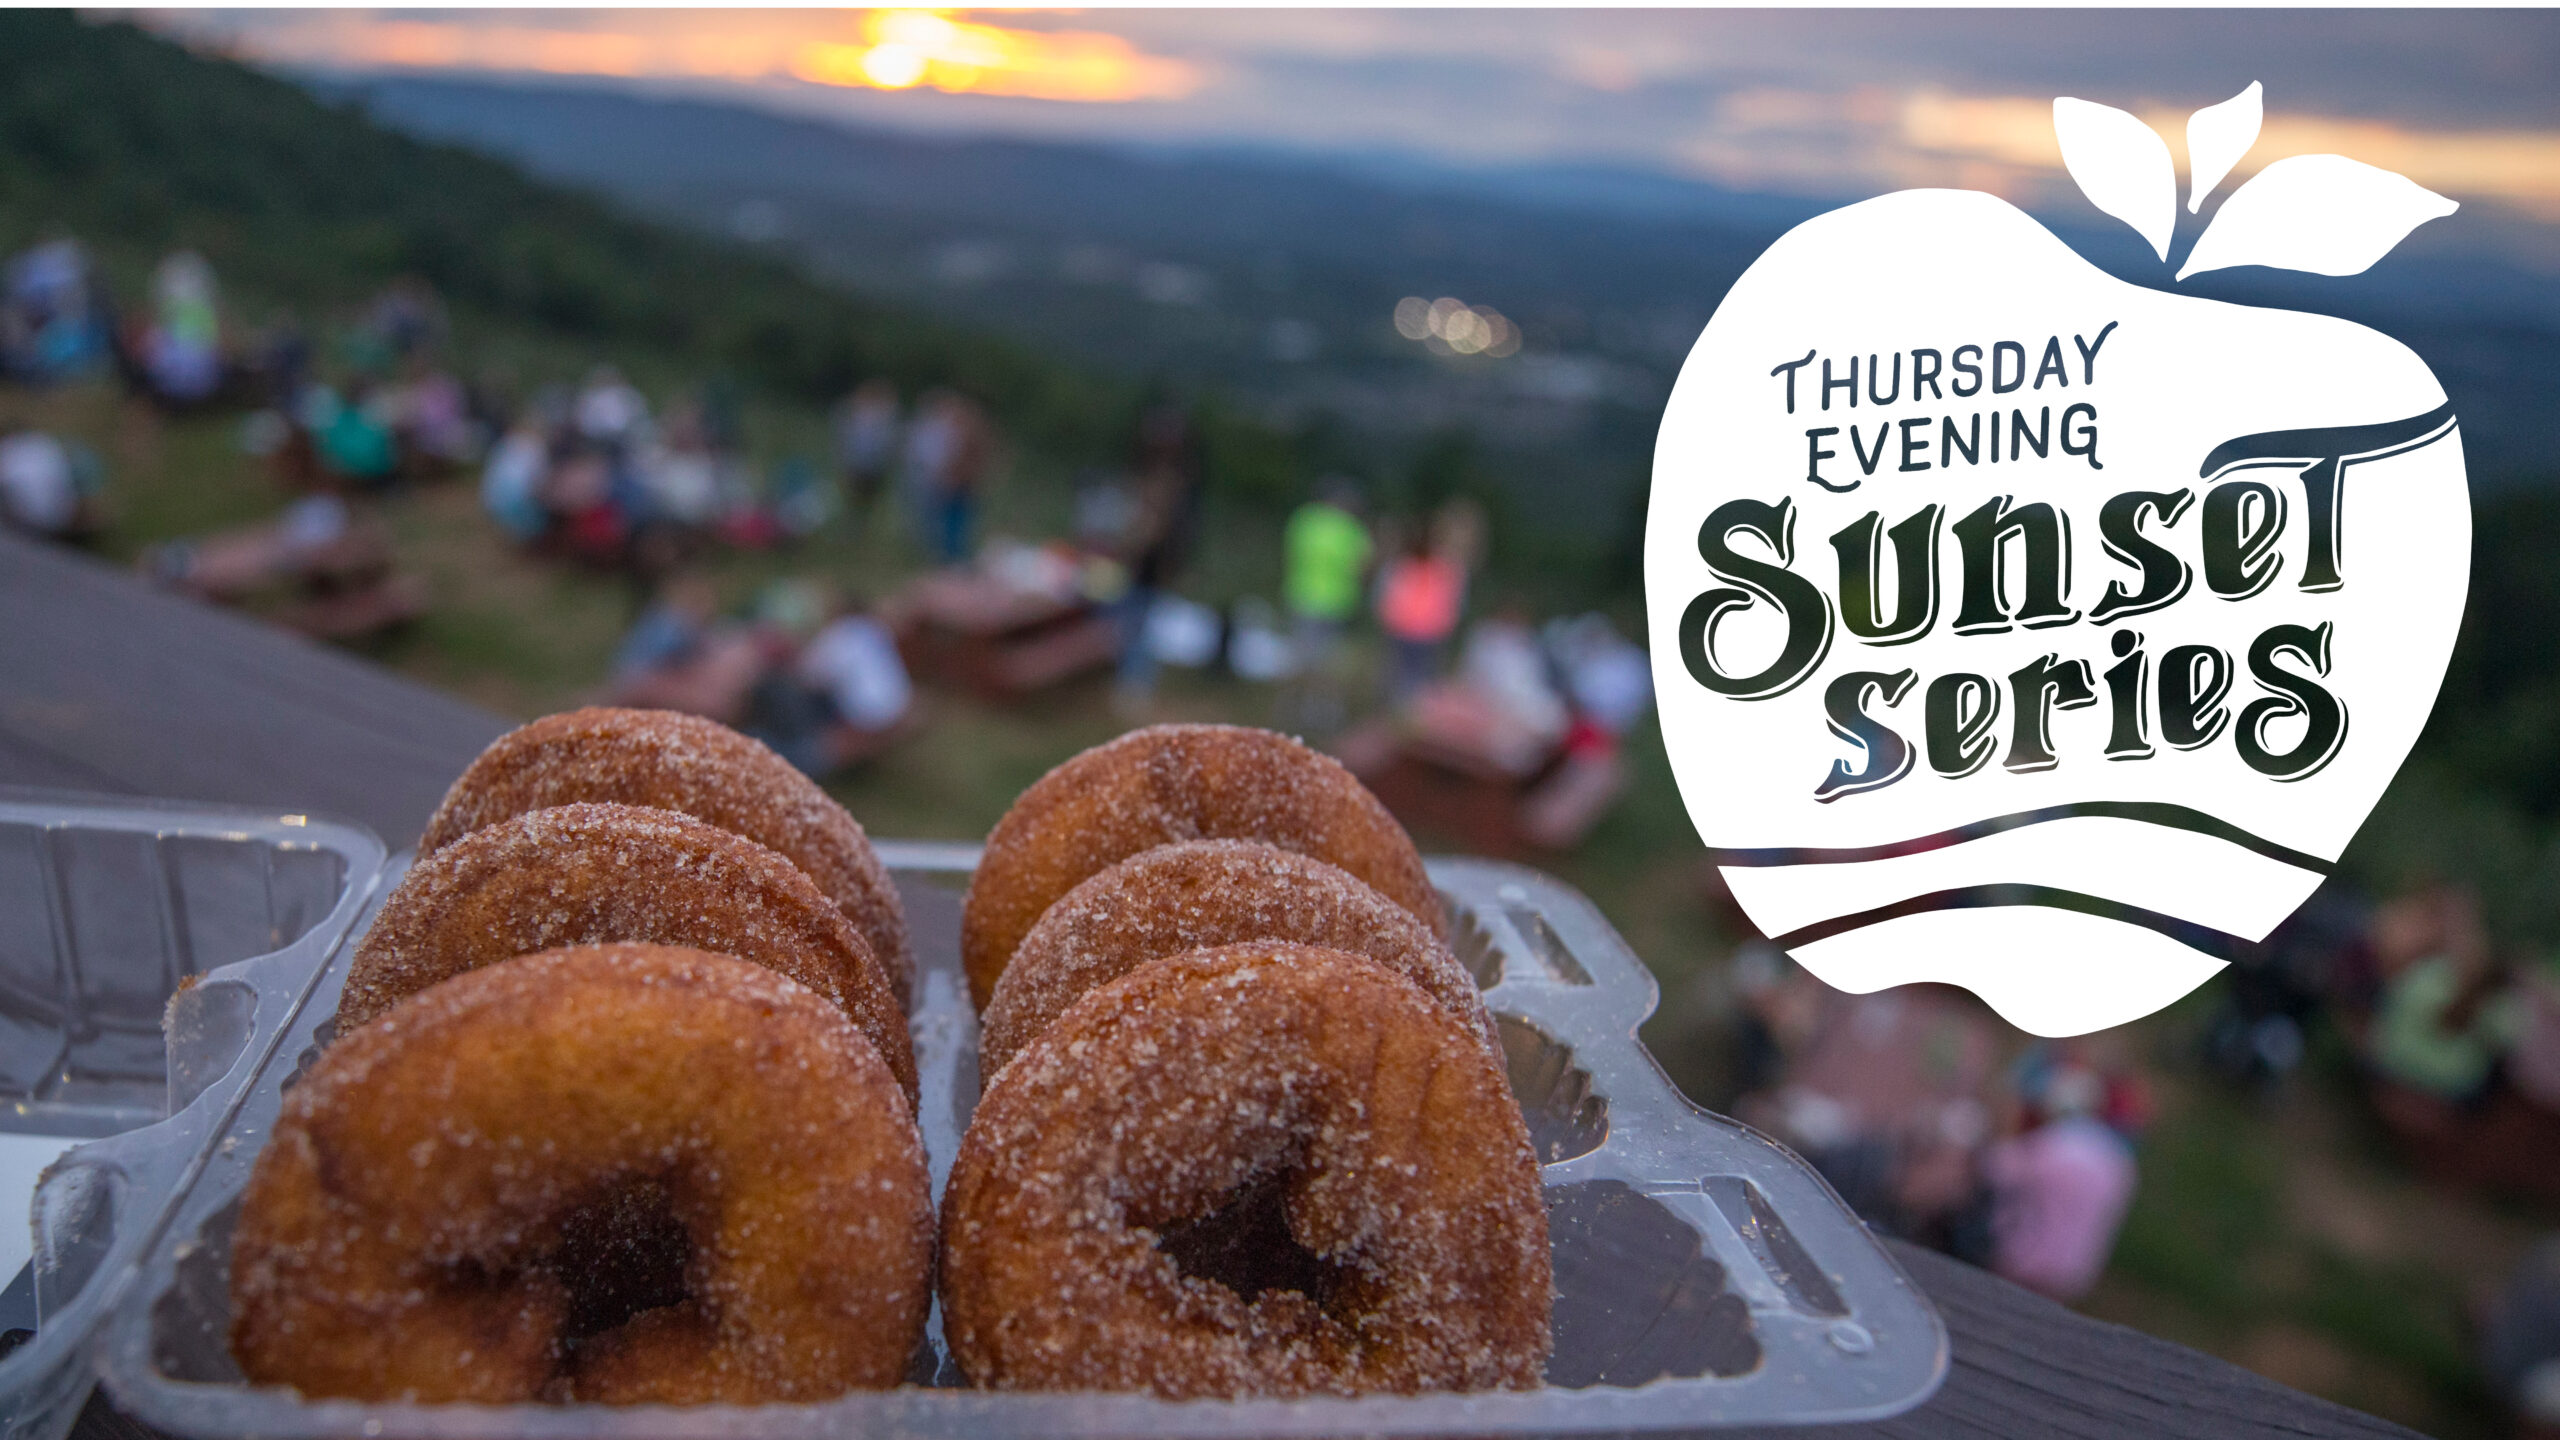 Thursday evening sunset series donuts graphic